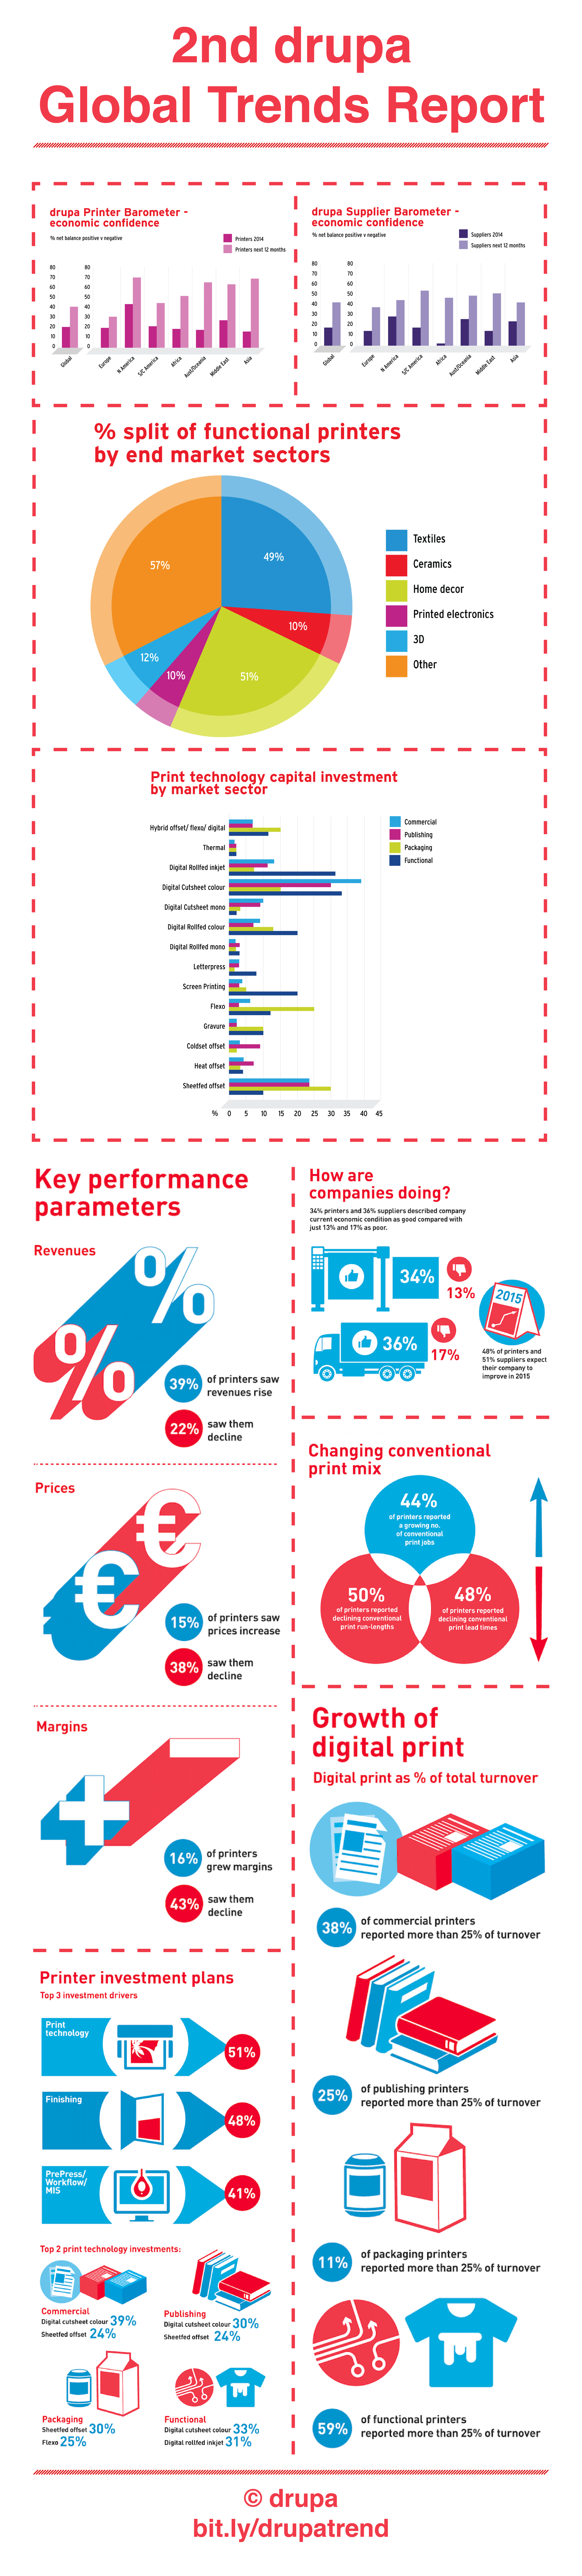 drupa-infographic